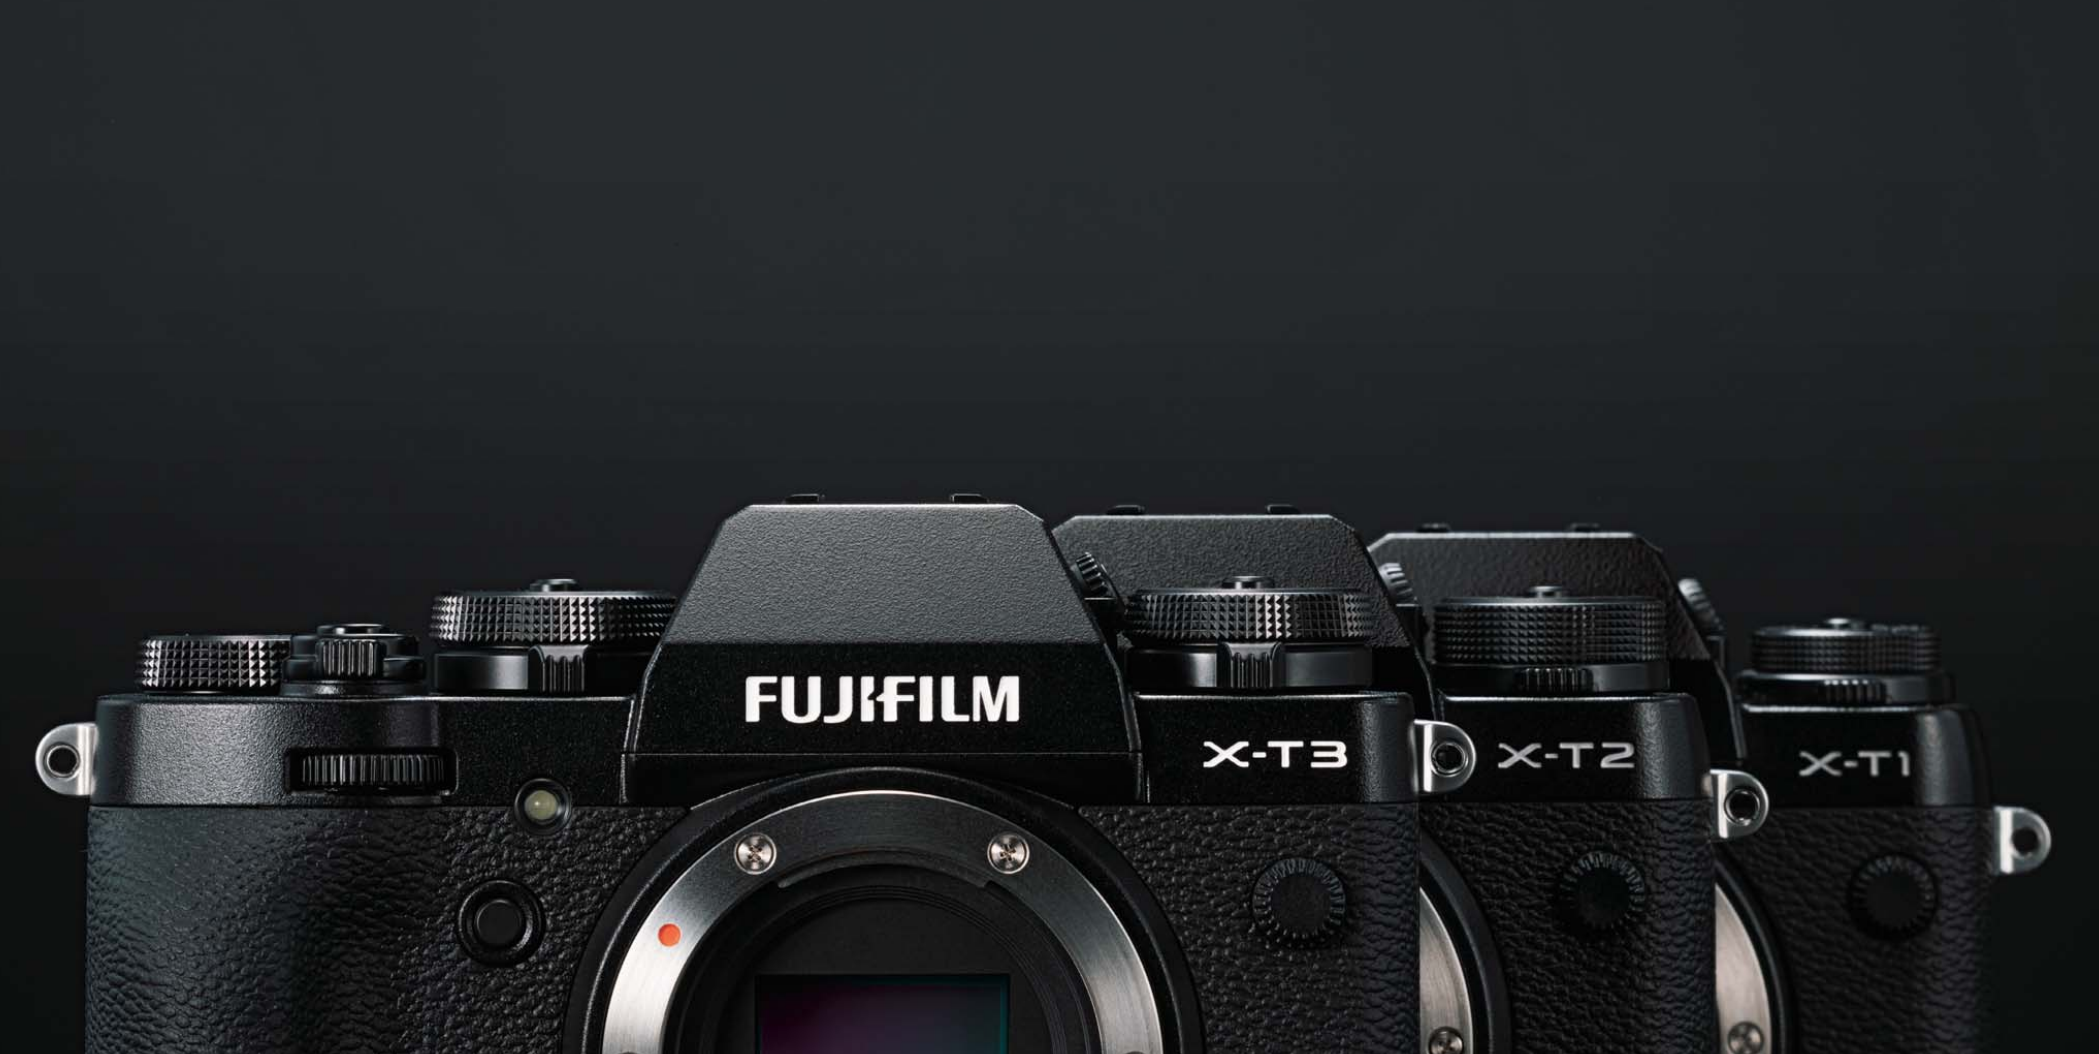 Source: Fujifilm Global